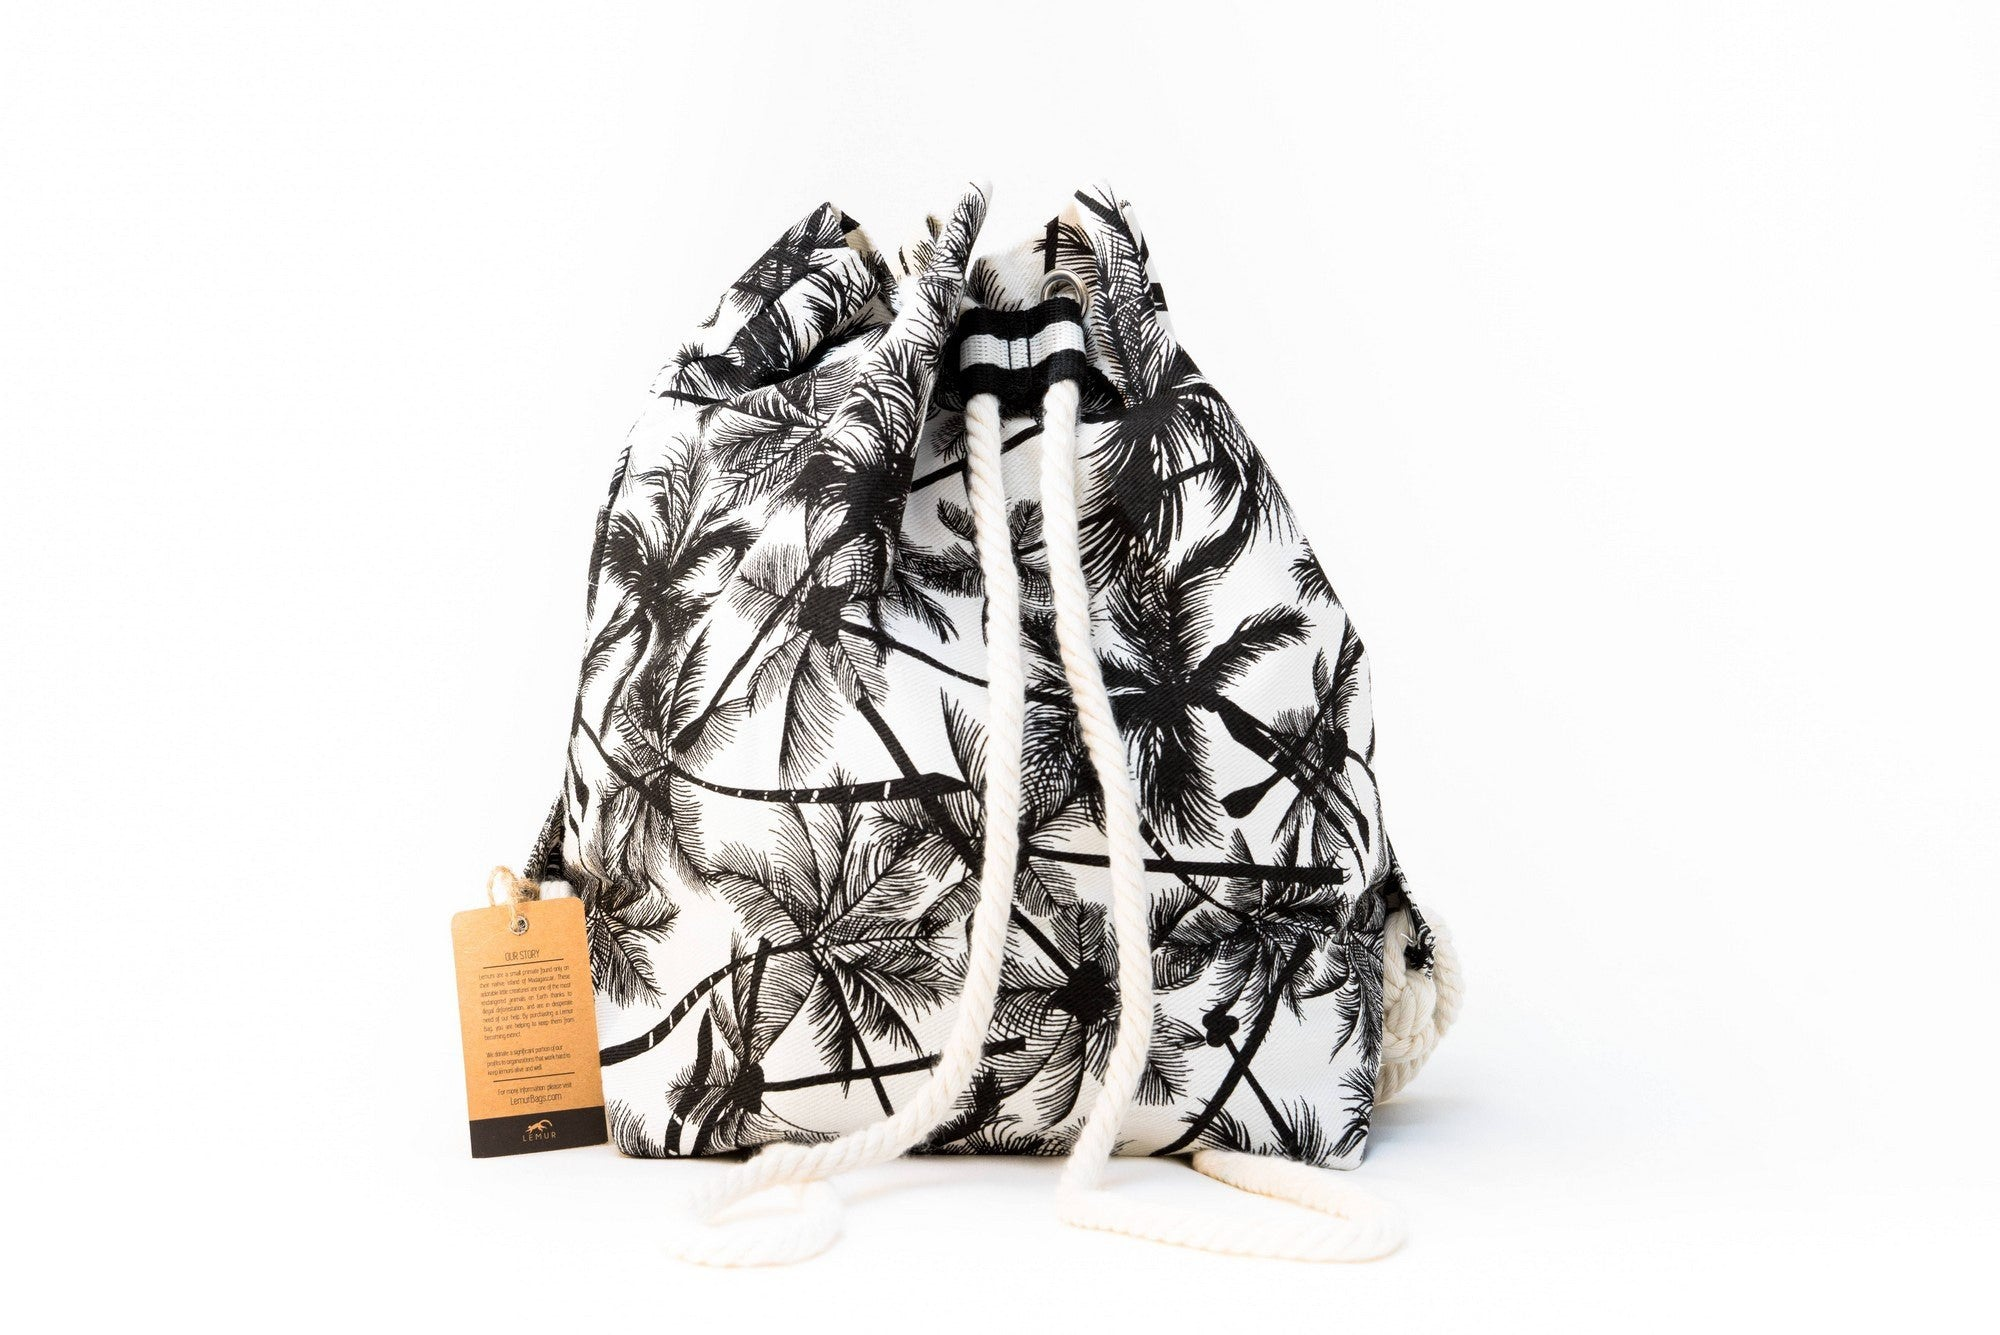 Canvas Travel Daypack - Canvas Travel Daypack - Rope Drawstring Cinchsack By Lemur Bags (Tropical Palm)